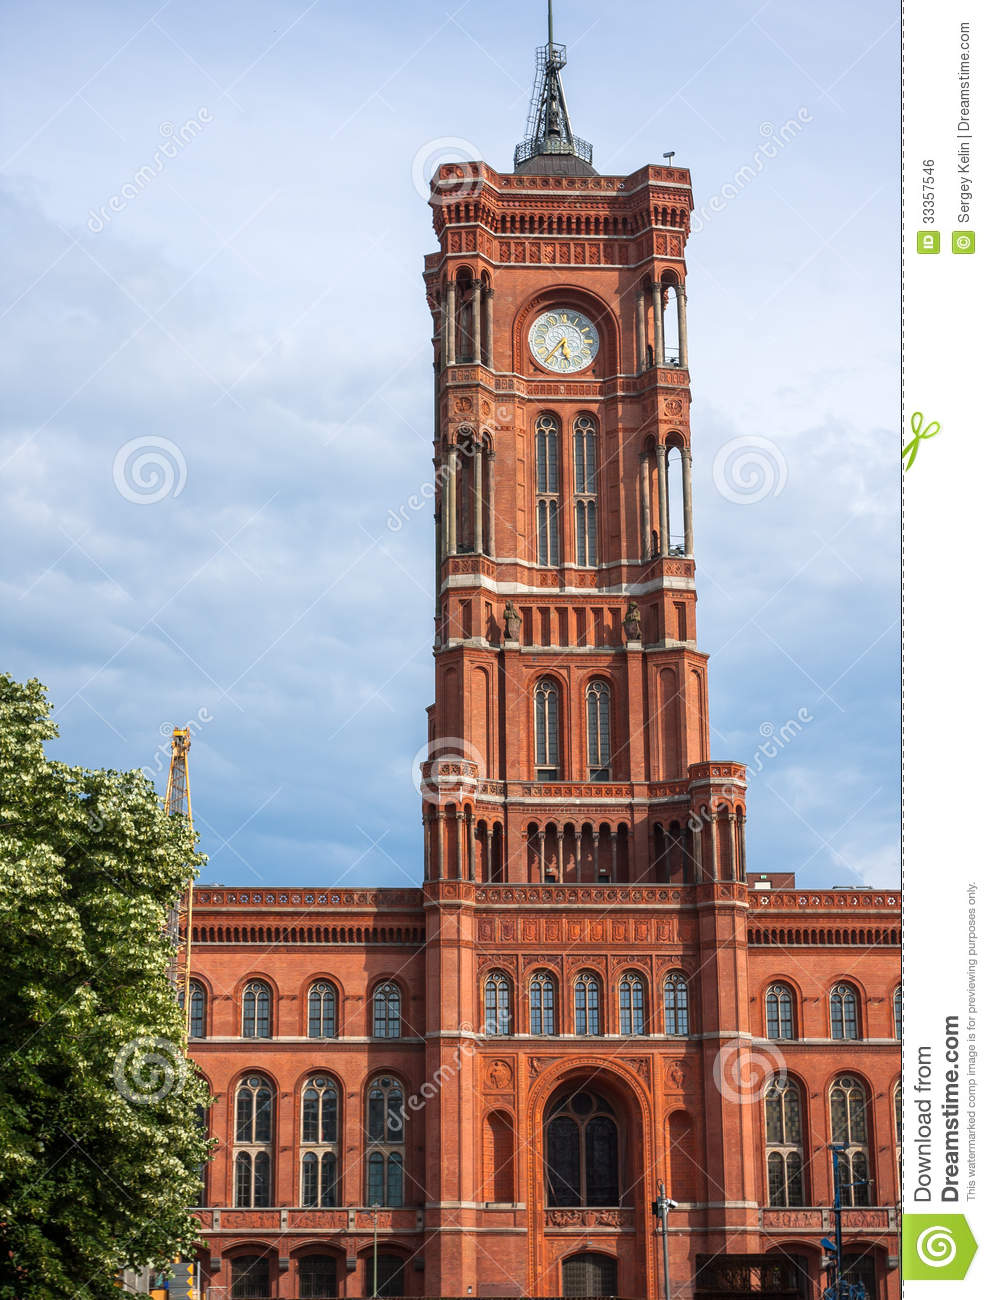 berlin town hall rathaus in germany stock photo image. Black Bedroom Furniture Sets. Home Design Ideas